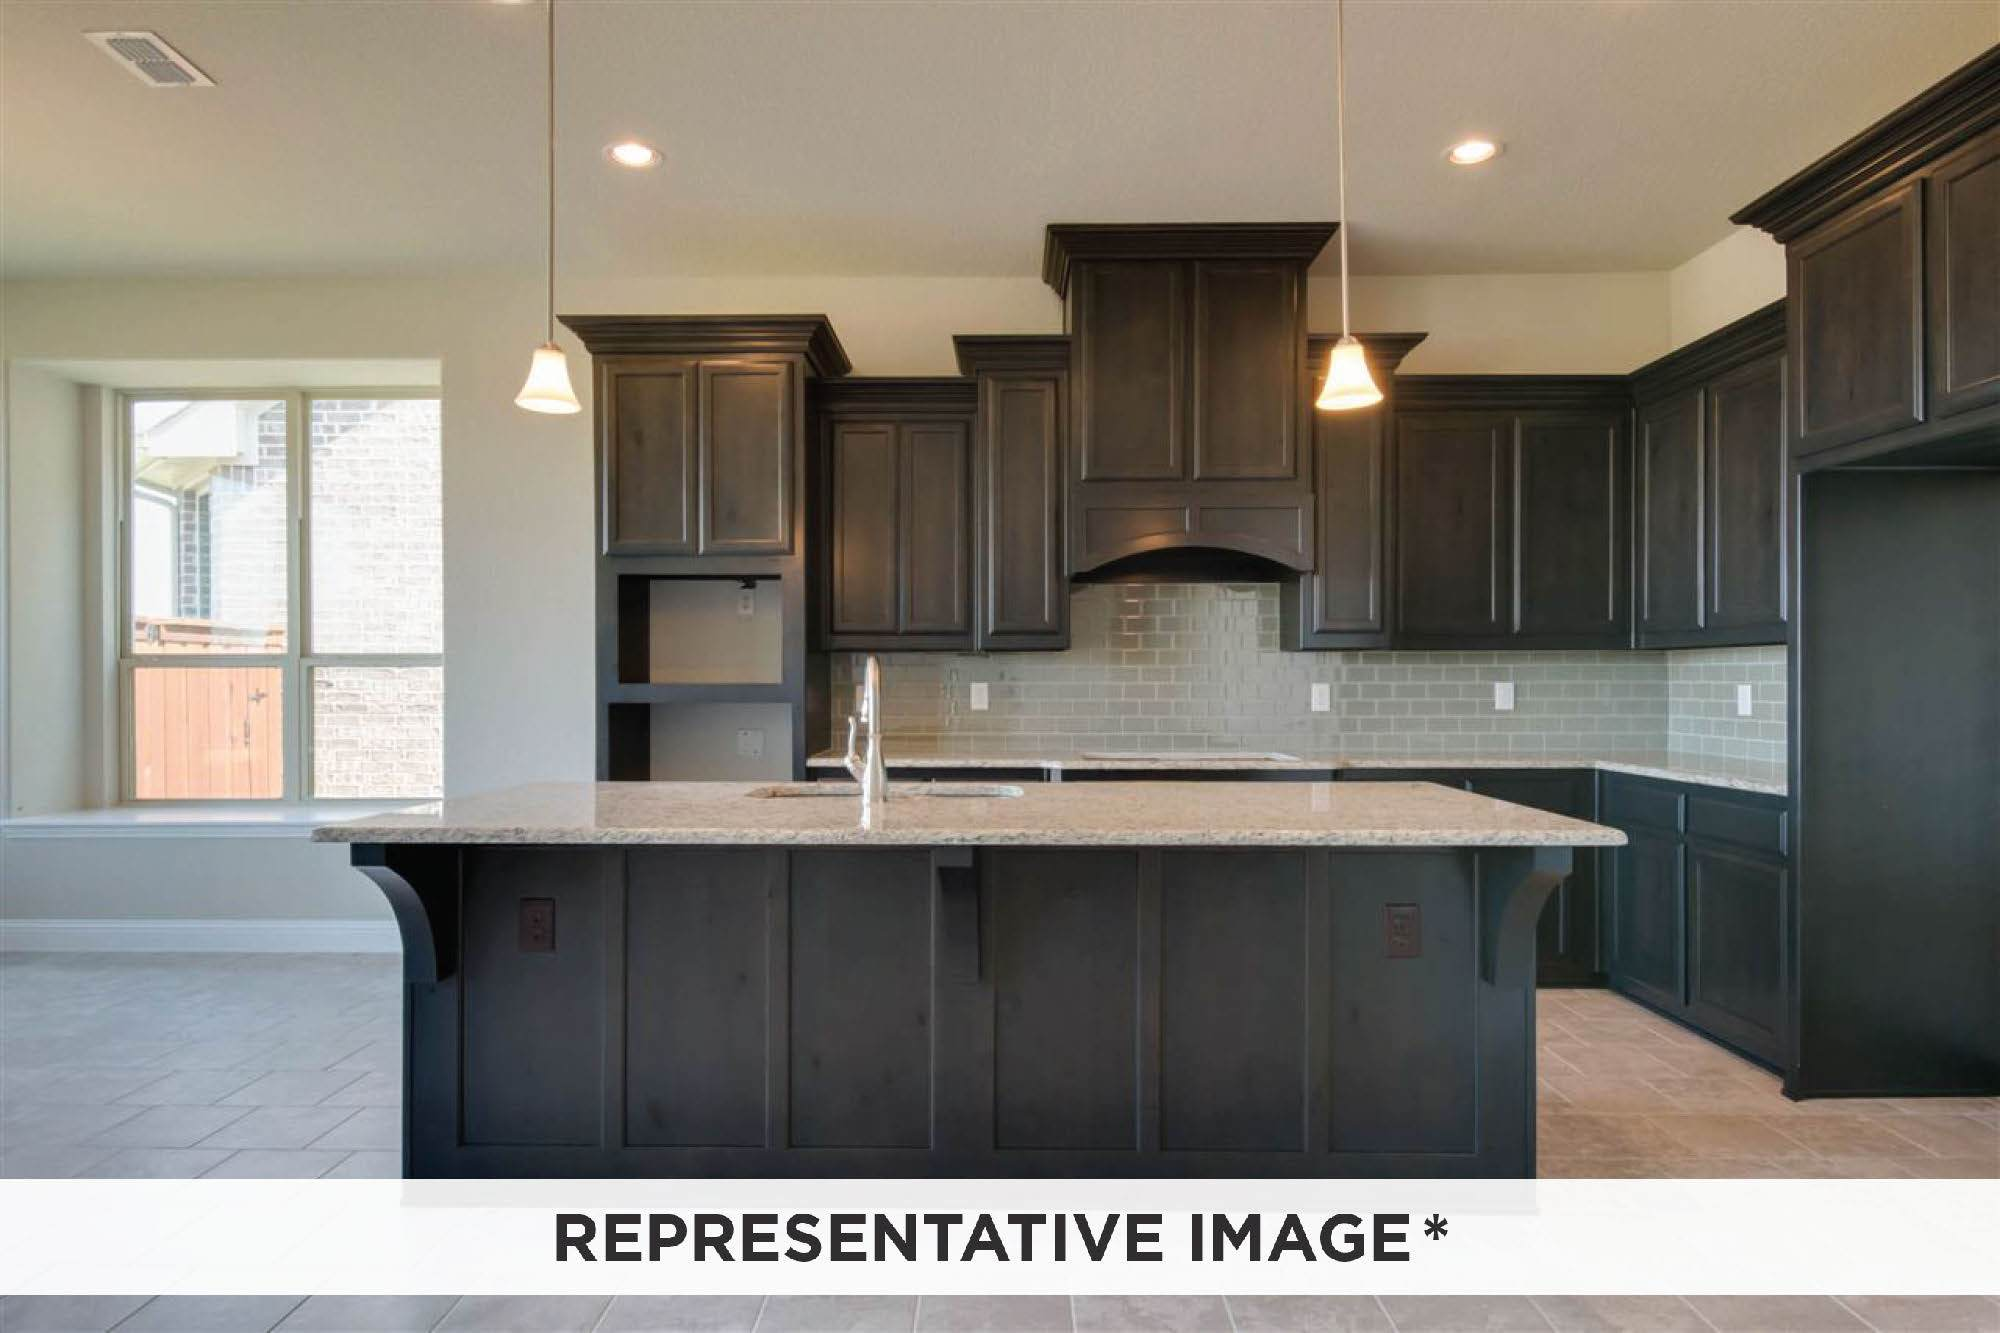 Kitchen featured in the Arpeggio By Rendition Homes in Fort Worth, TX